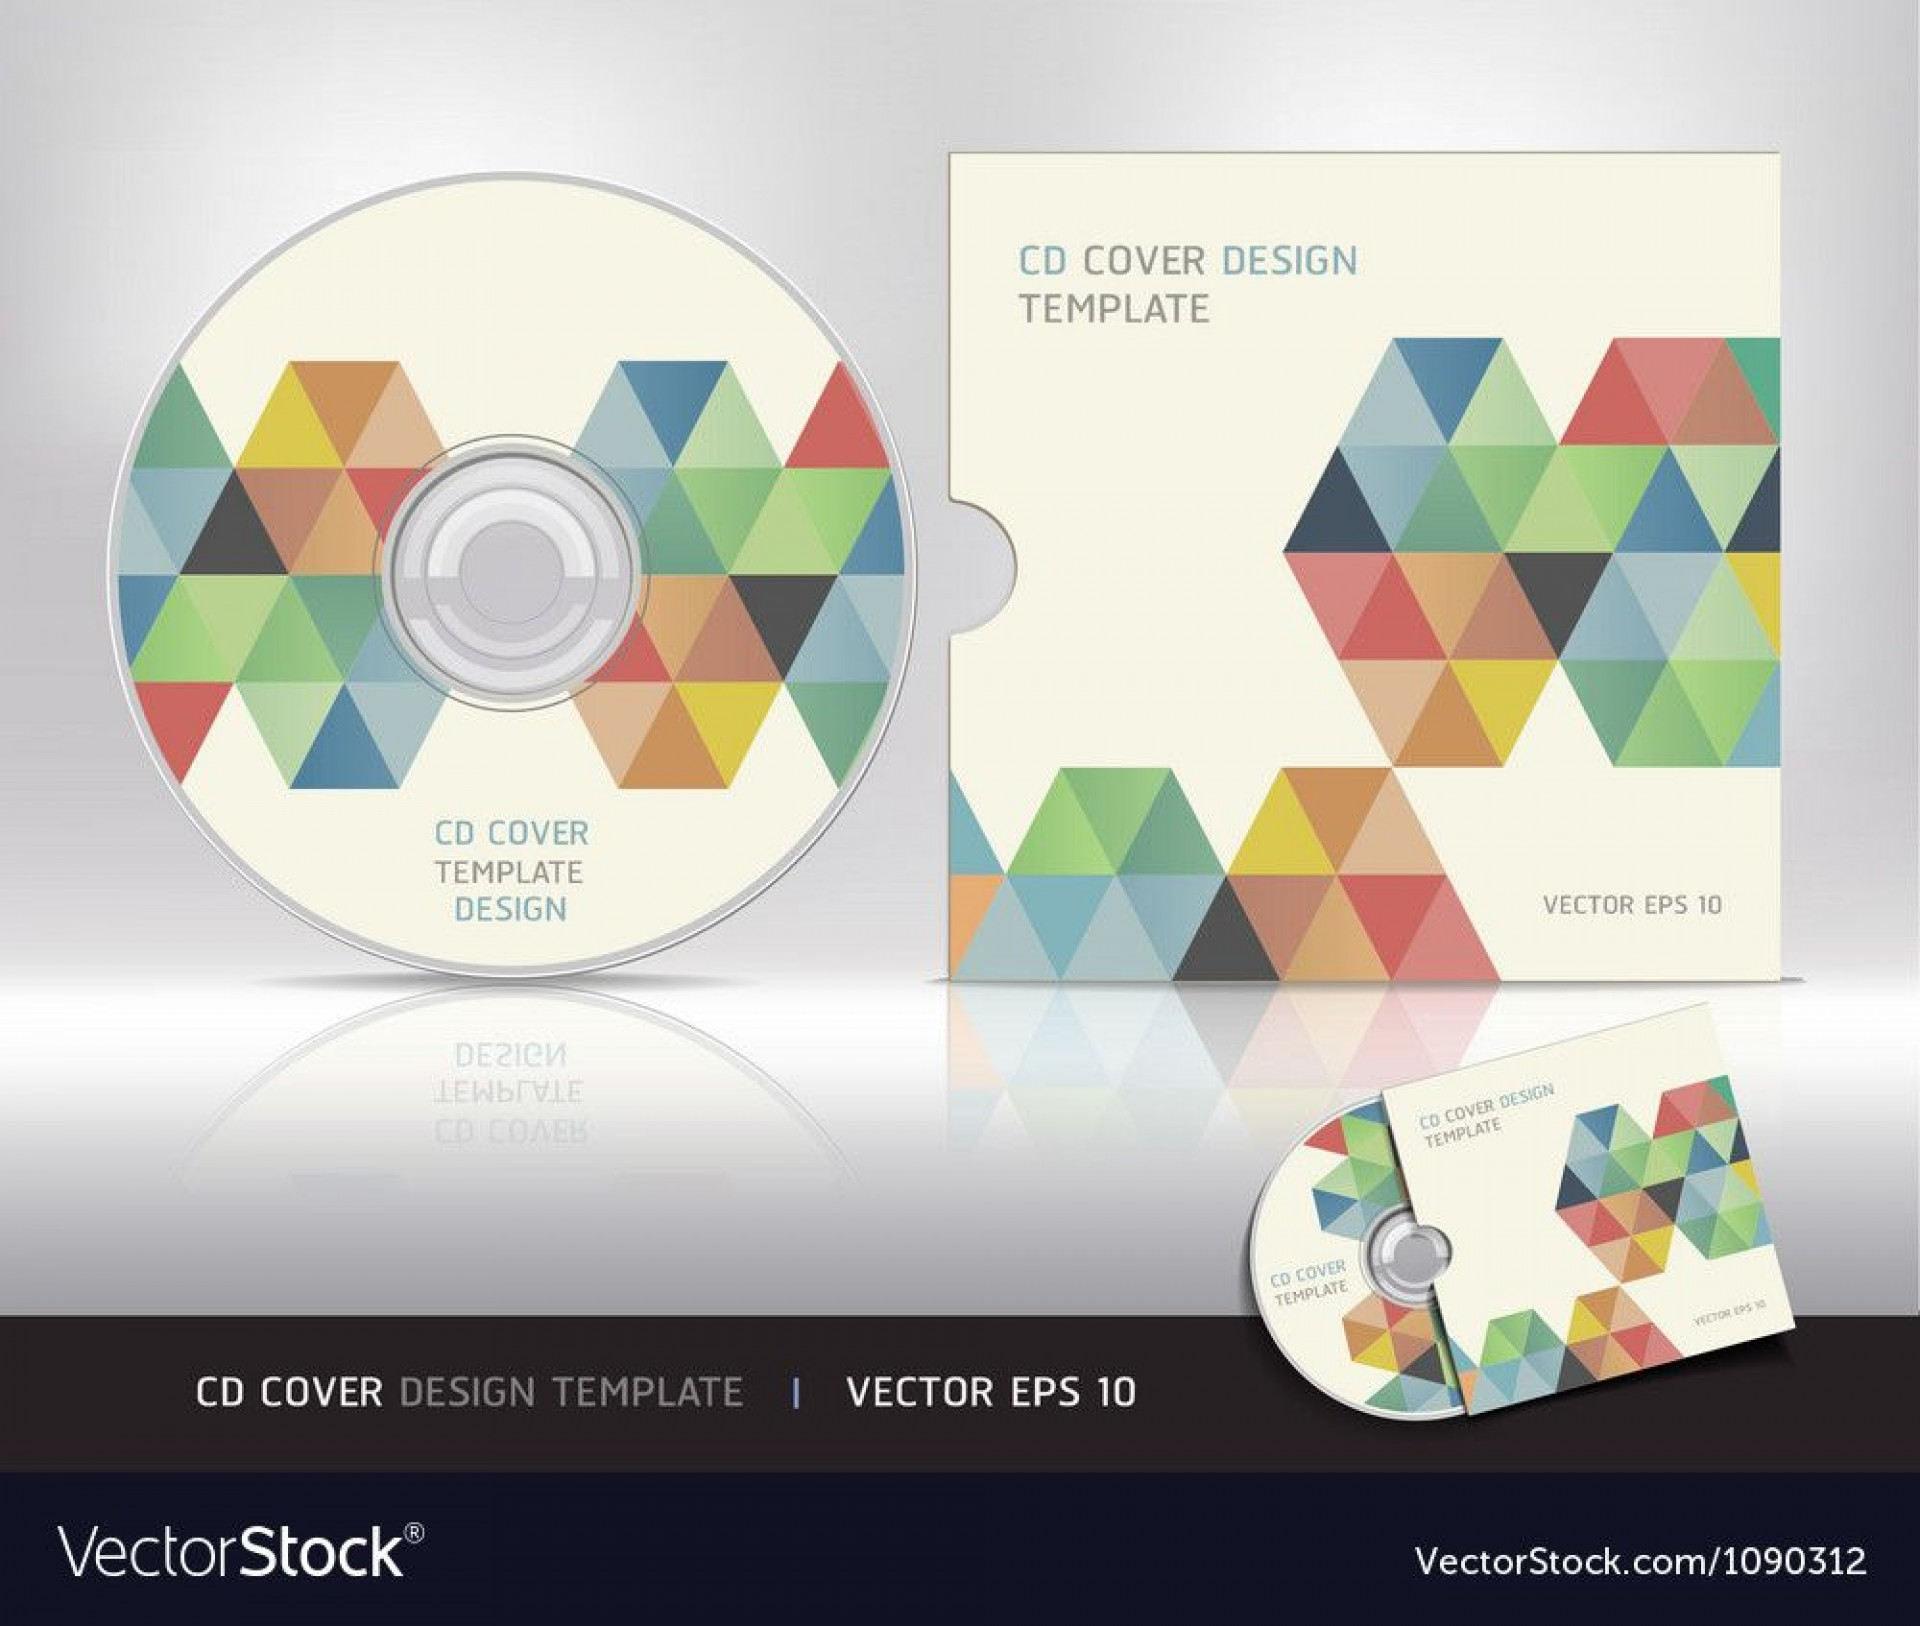 005 Unforgettable Cd Design Template Free High Definition  Cover Download Word Label Wedding1920